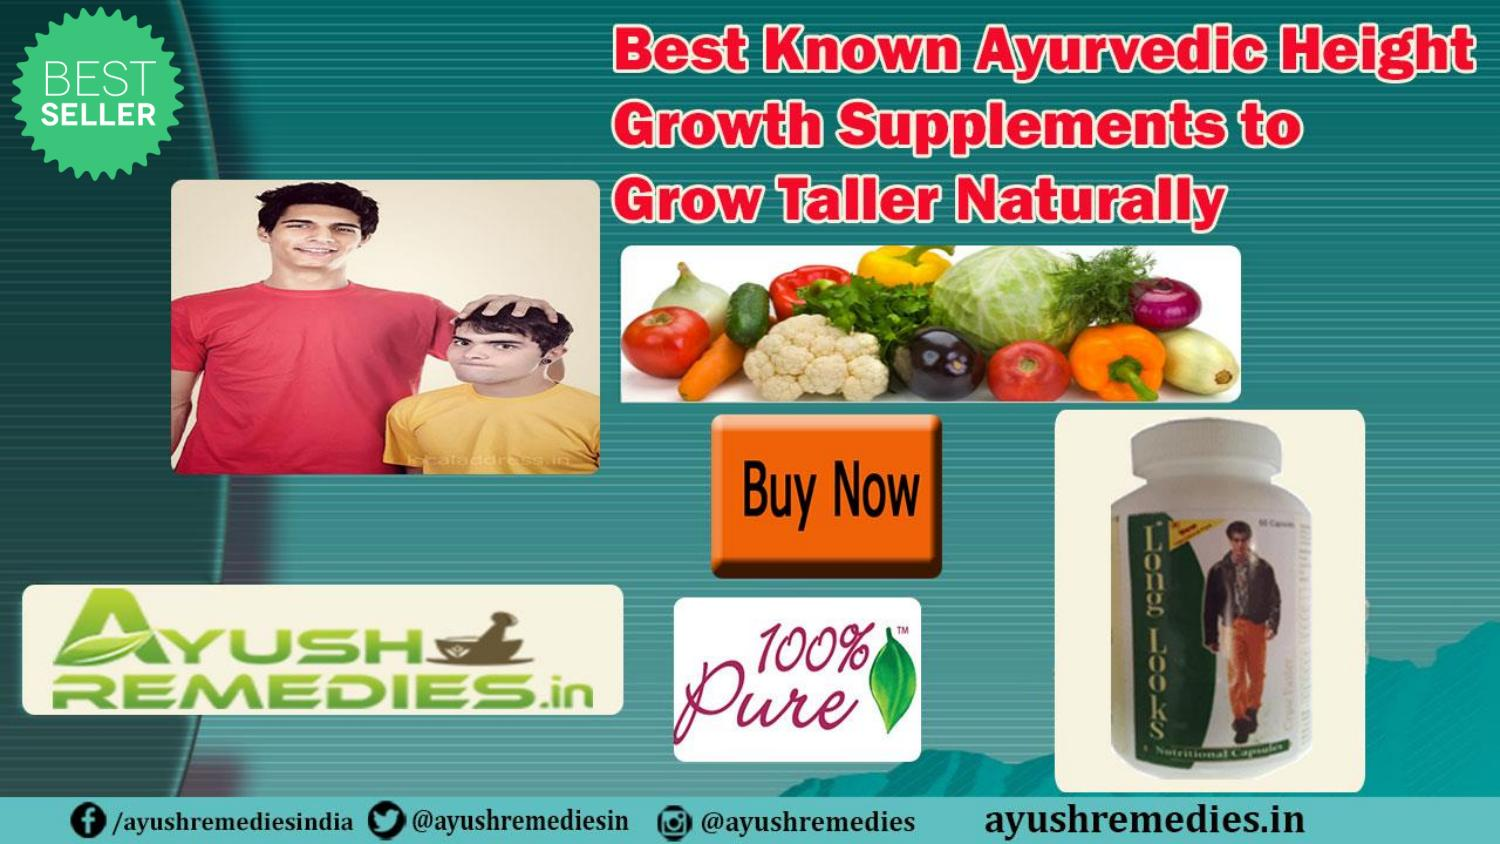 Best Known Ayurvedic Height Growth Supplements To Grow Taller Naturally By Ayush Remedies Issuu